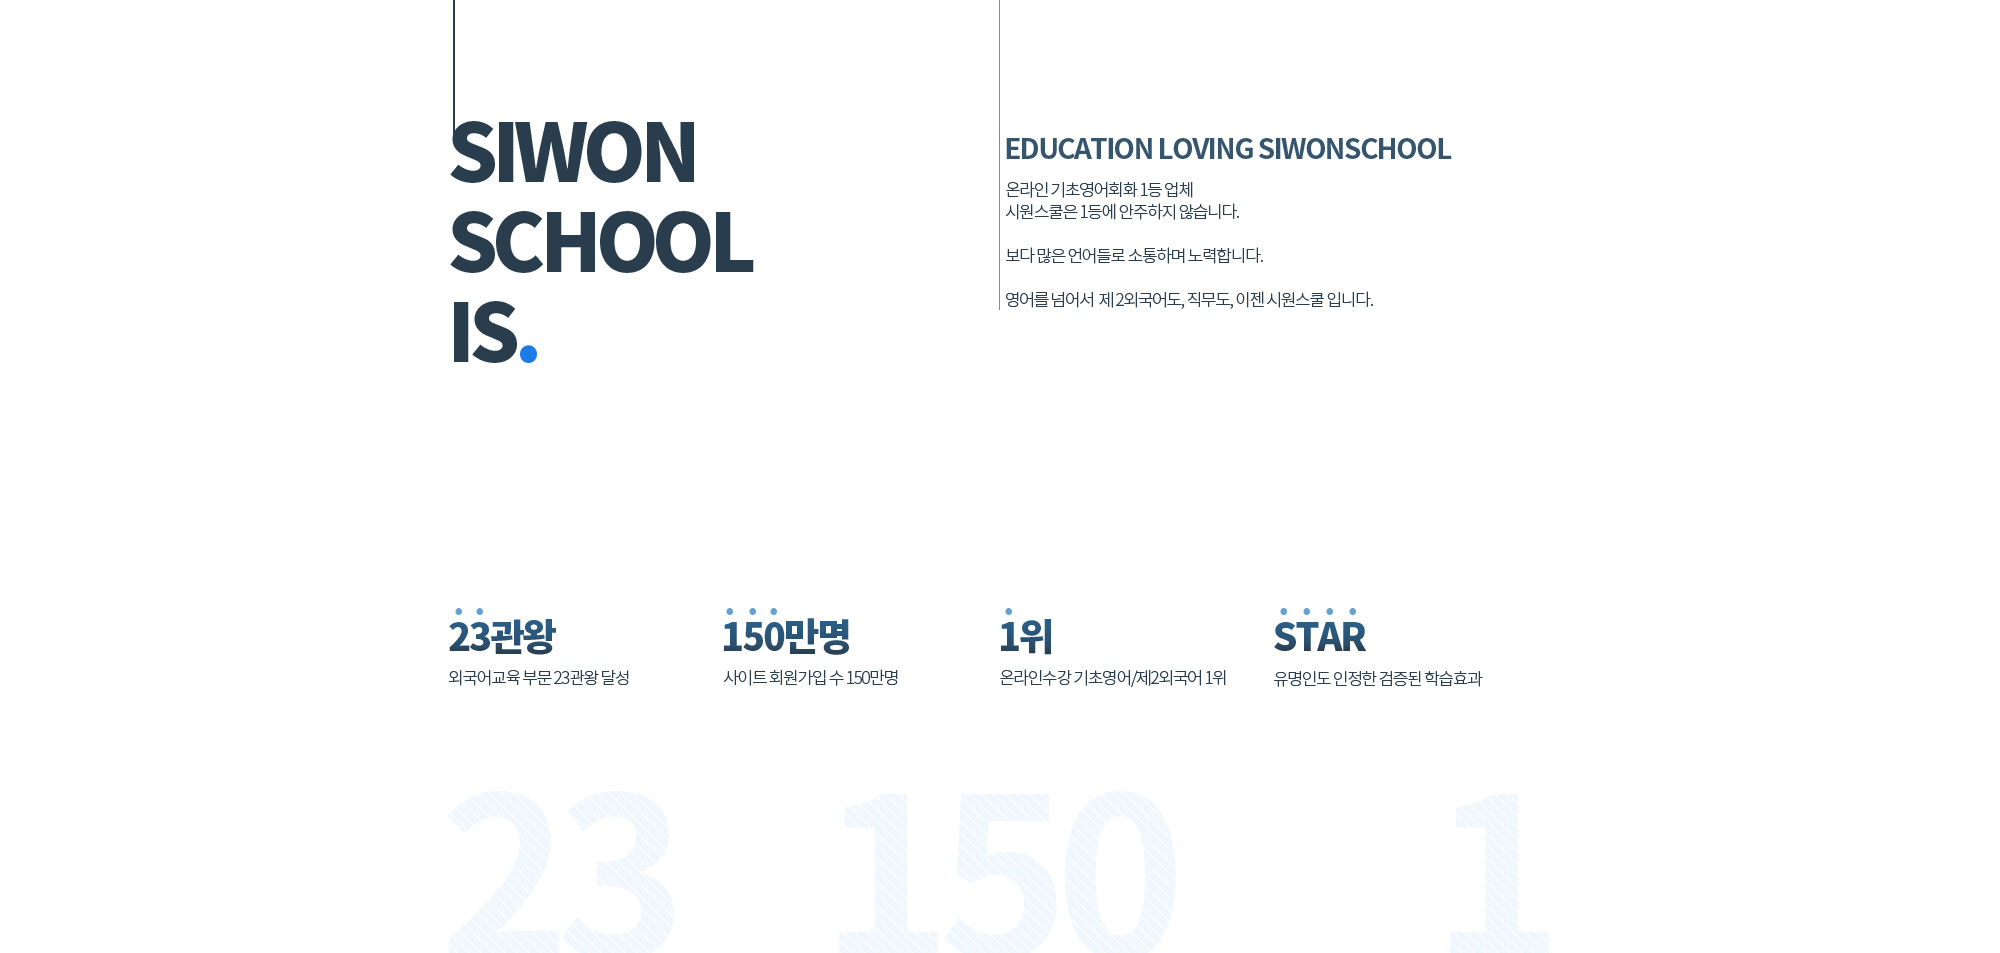 SIWON SCHOOL IS.